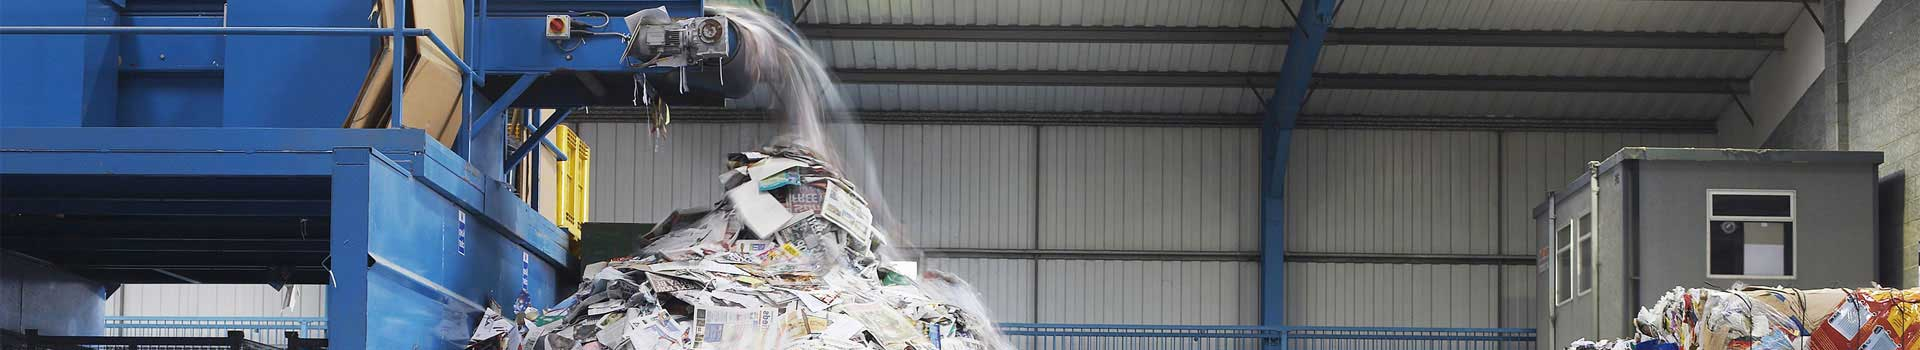 Waste Recycling & Collection